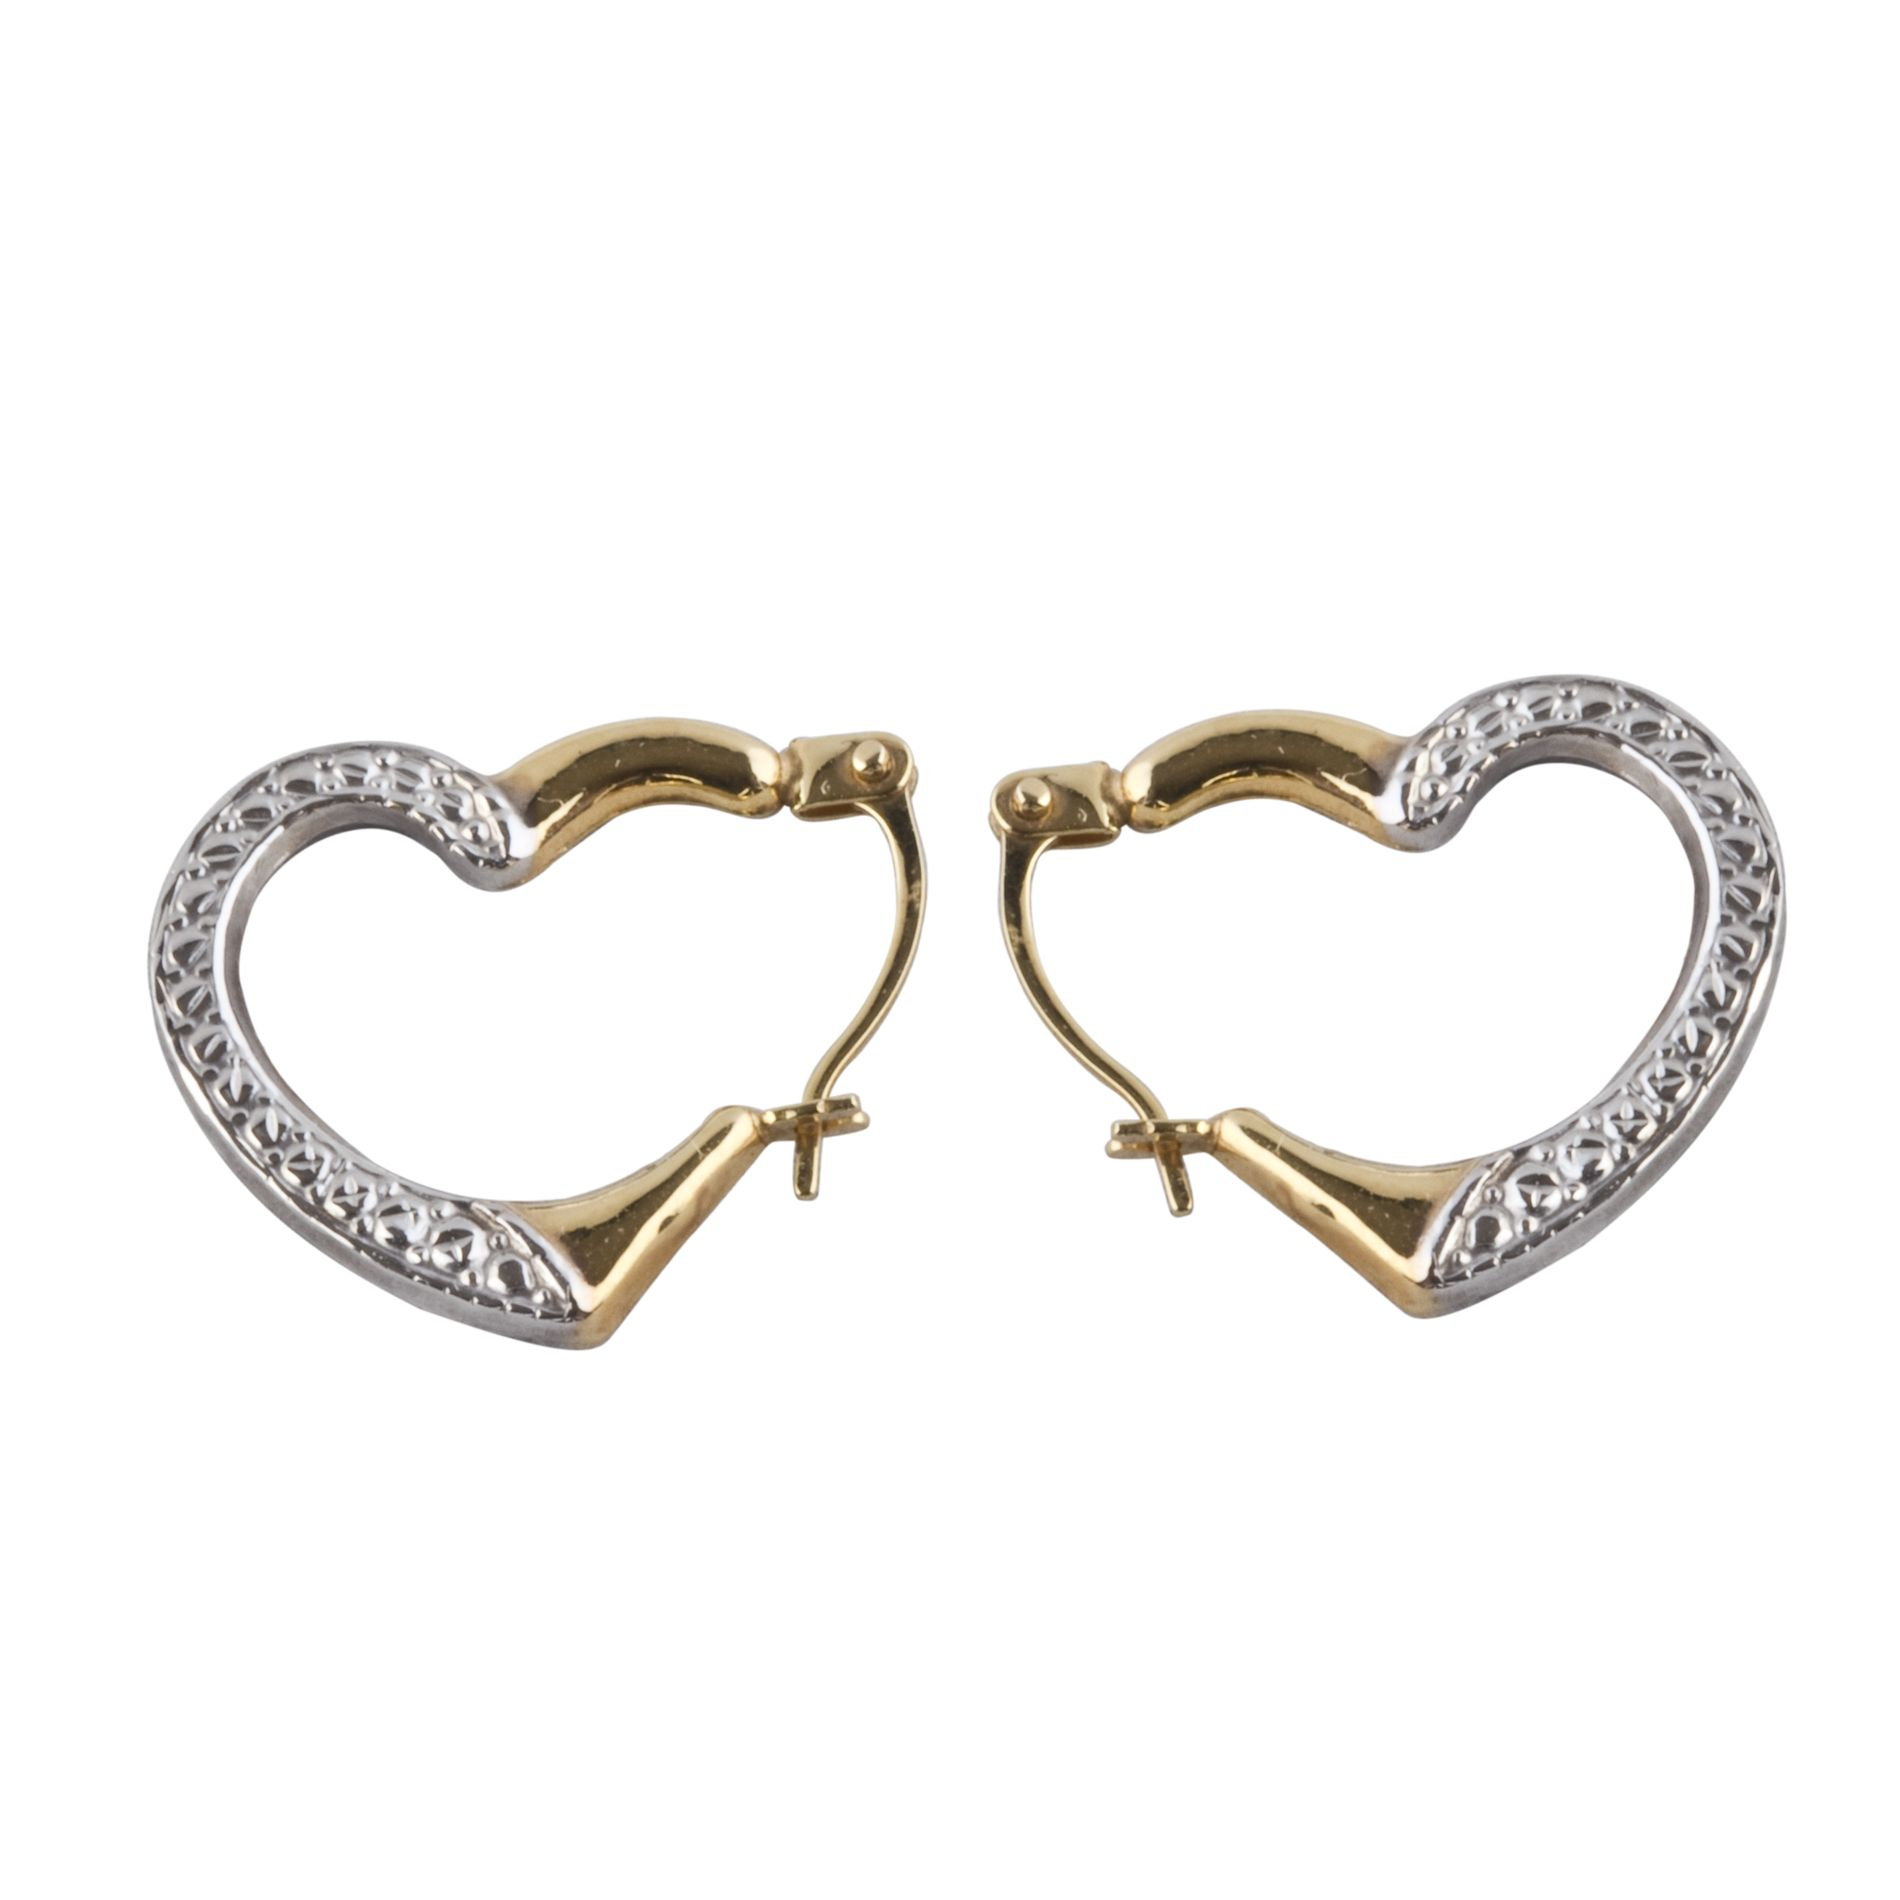 10k Two Tone Gold Earrings                                                                                                       at mygofer.com